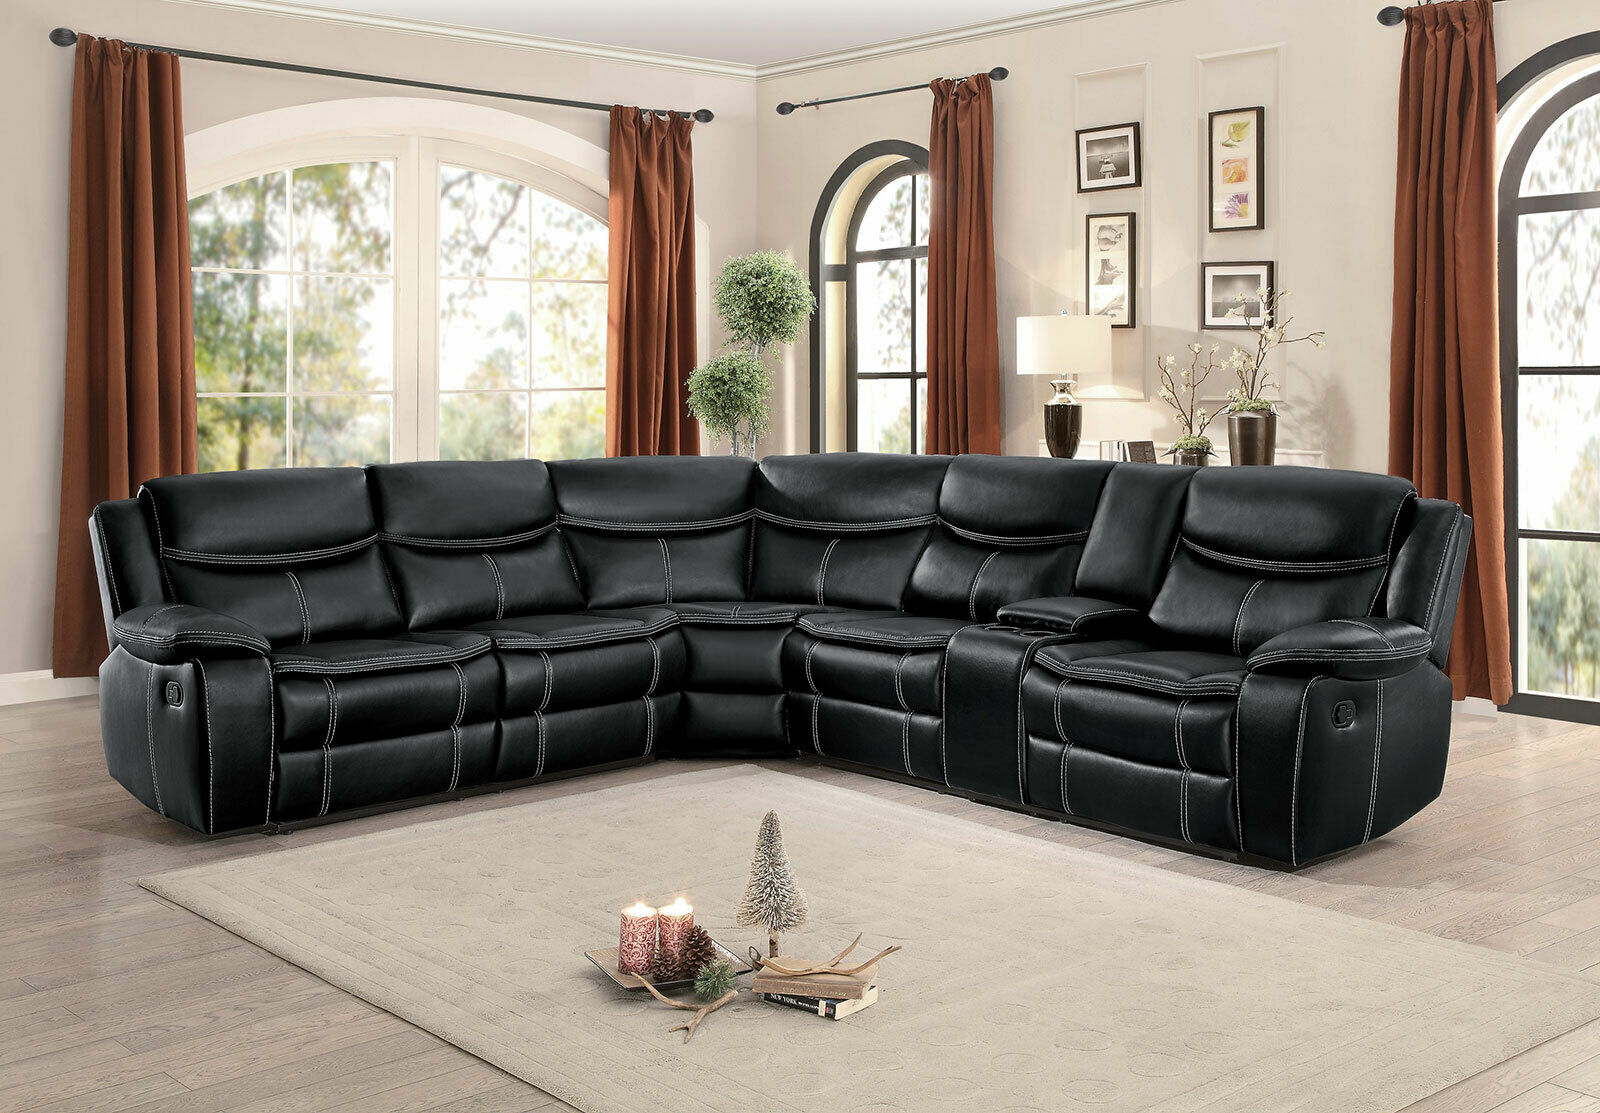 New Motion Sofa Sectional Black Faux Leather Reclining Living Room Couch Set F6a